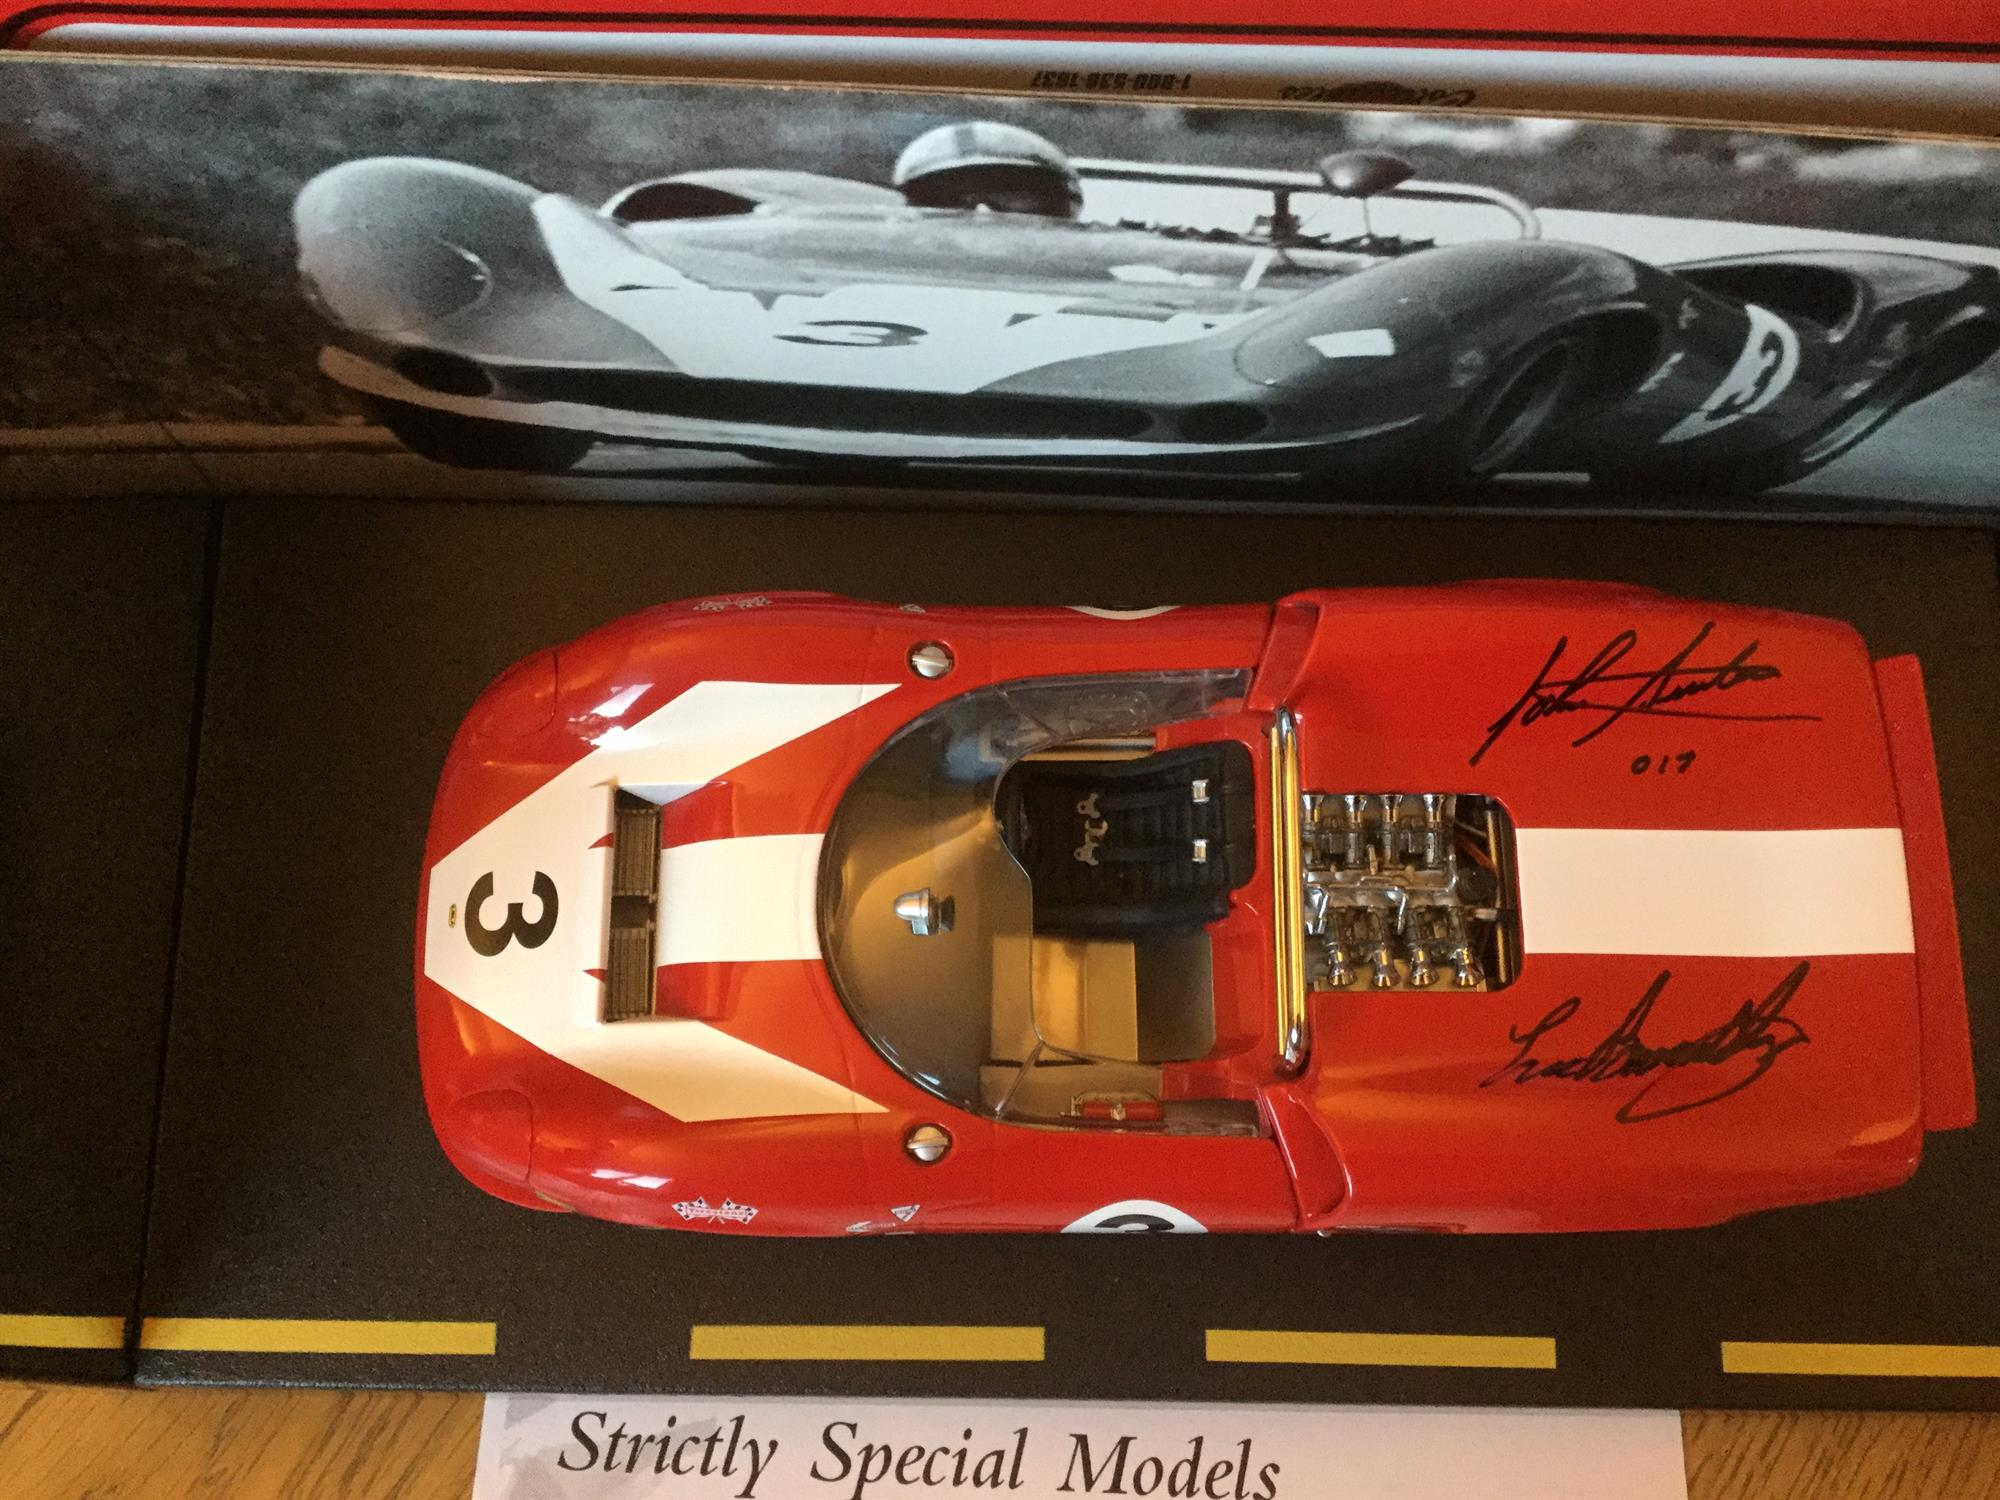 Superb John Surtees Tribute Collection of Models and Memorabilia - Image 2 of 8